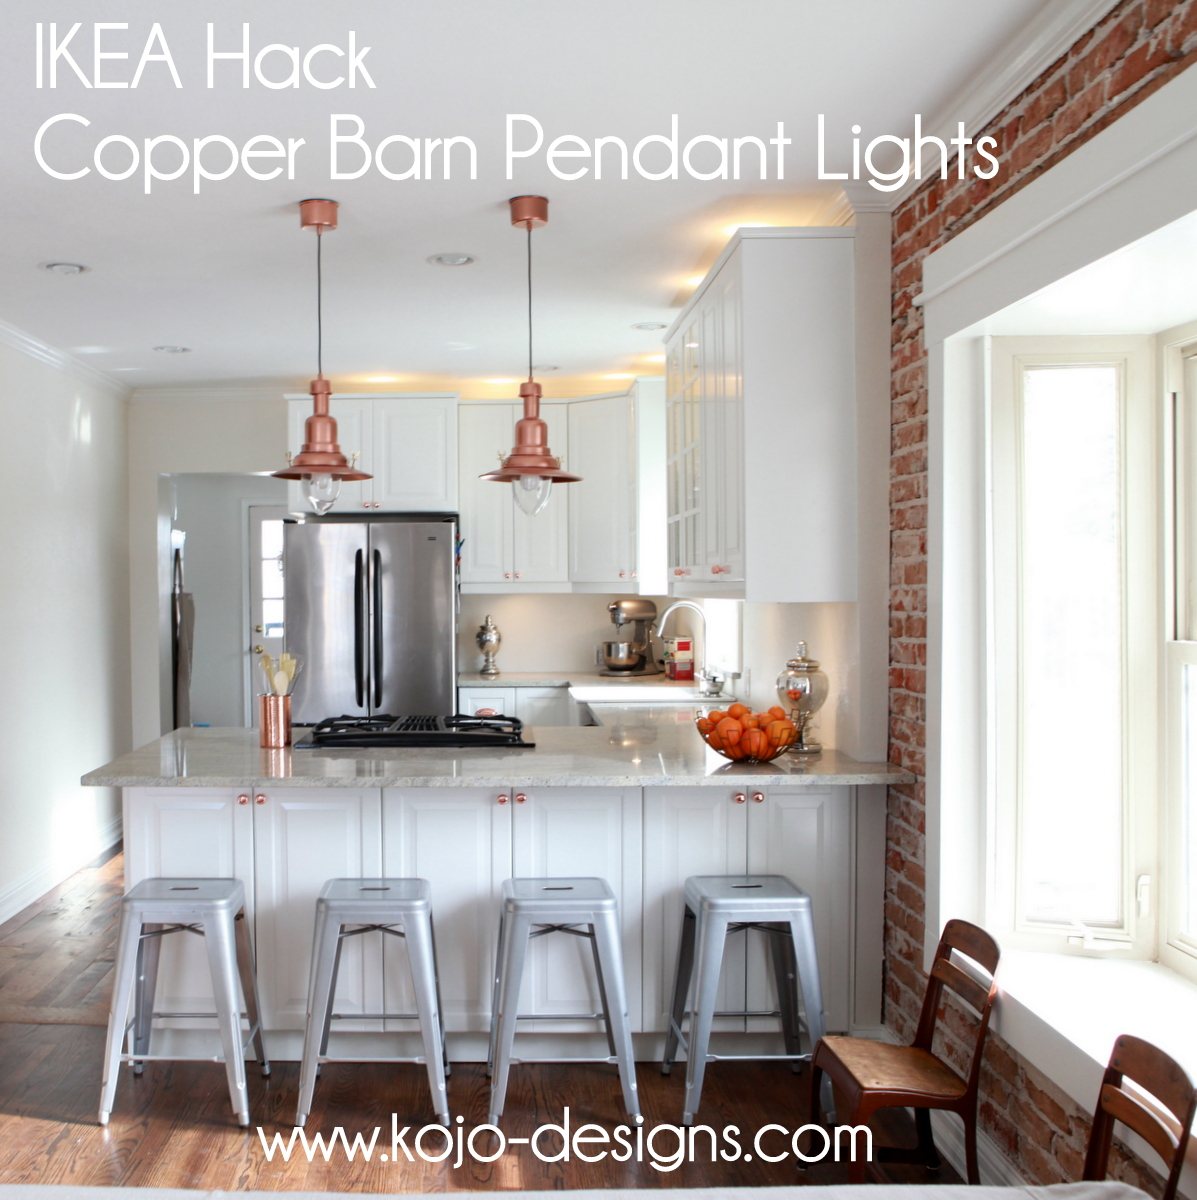 Copper barn light ikea hack ikea hack how to turn an ottava light into a copper barn pendant light aloadofball Gallery